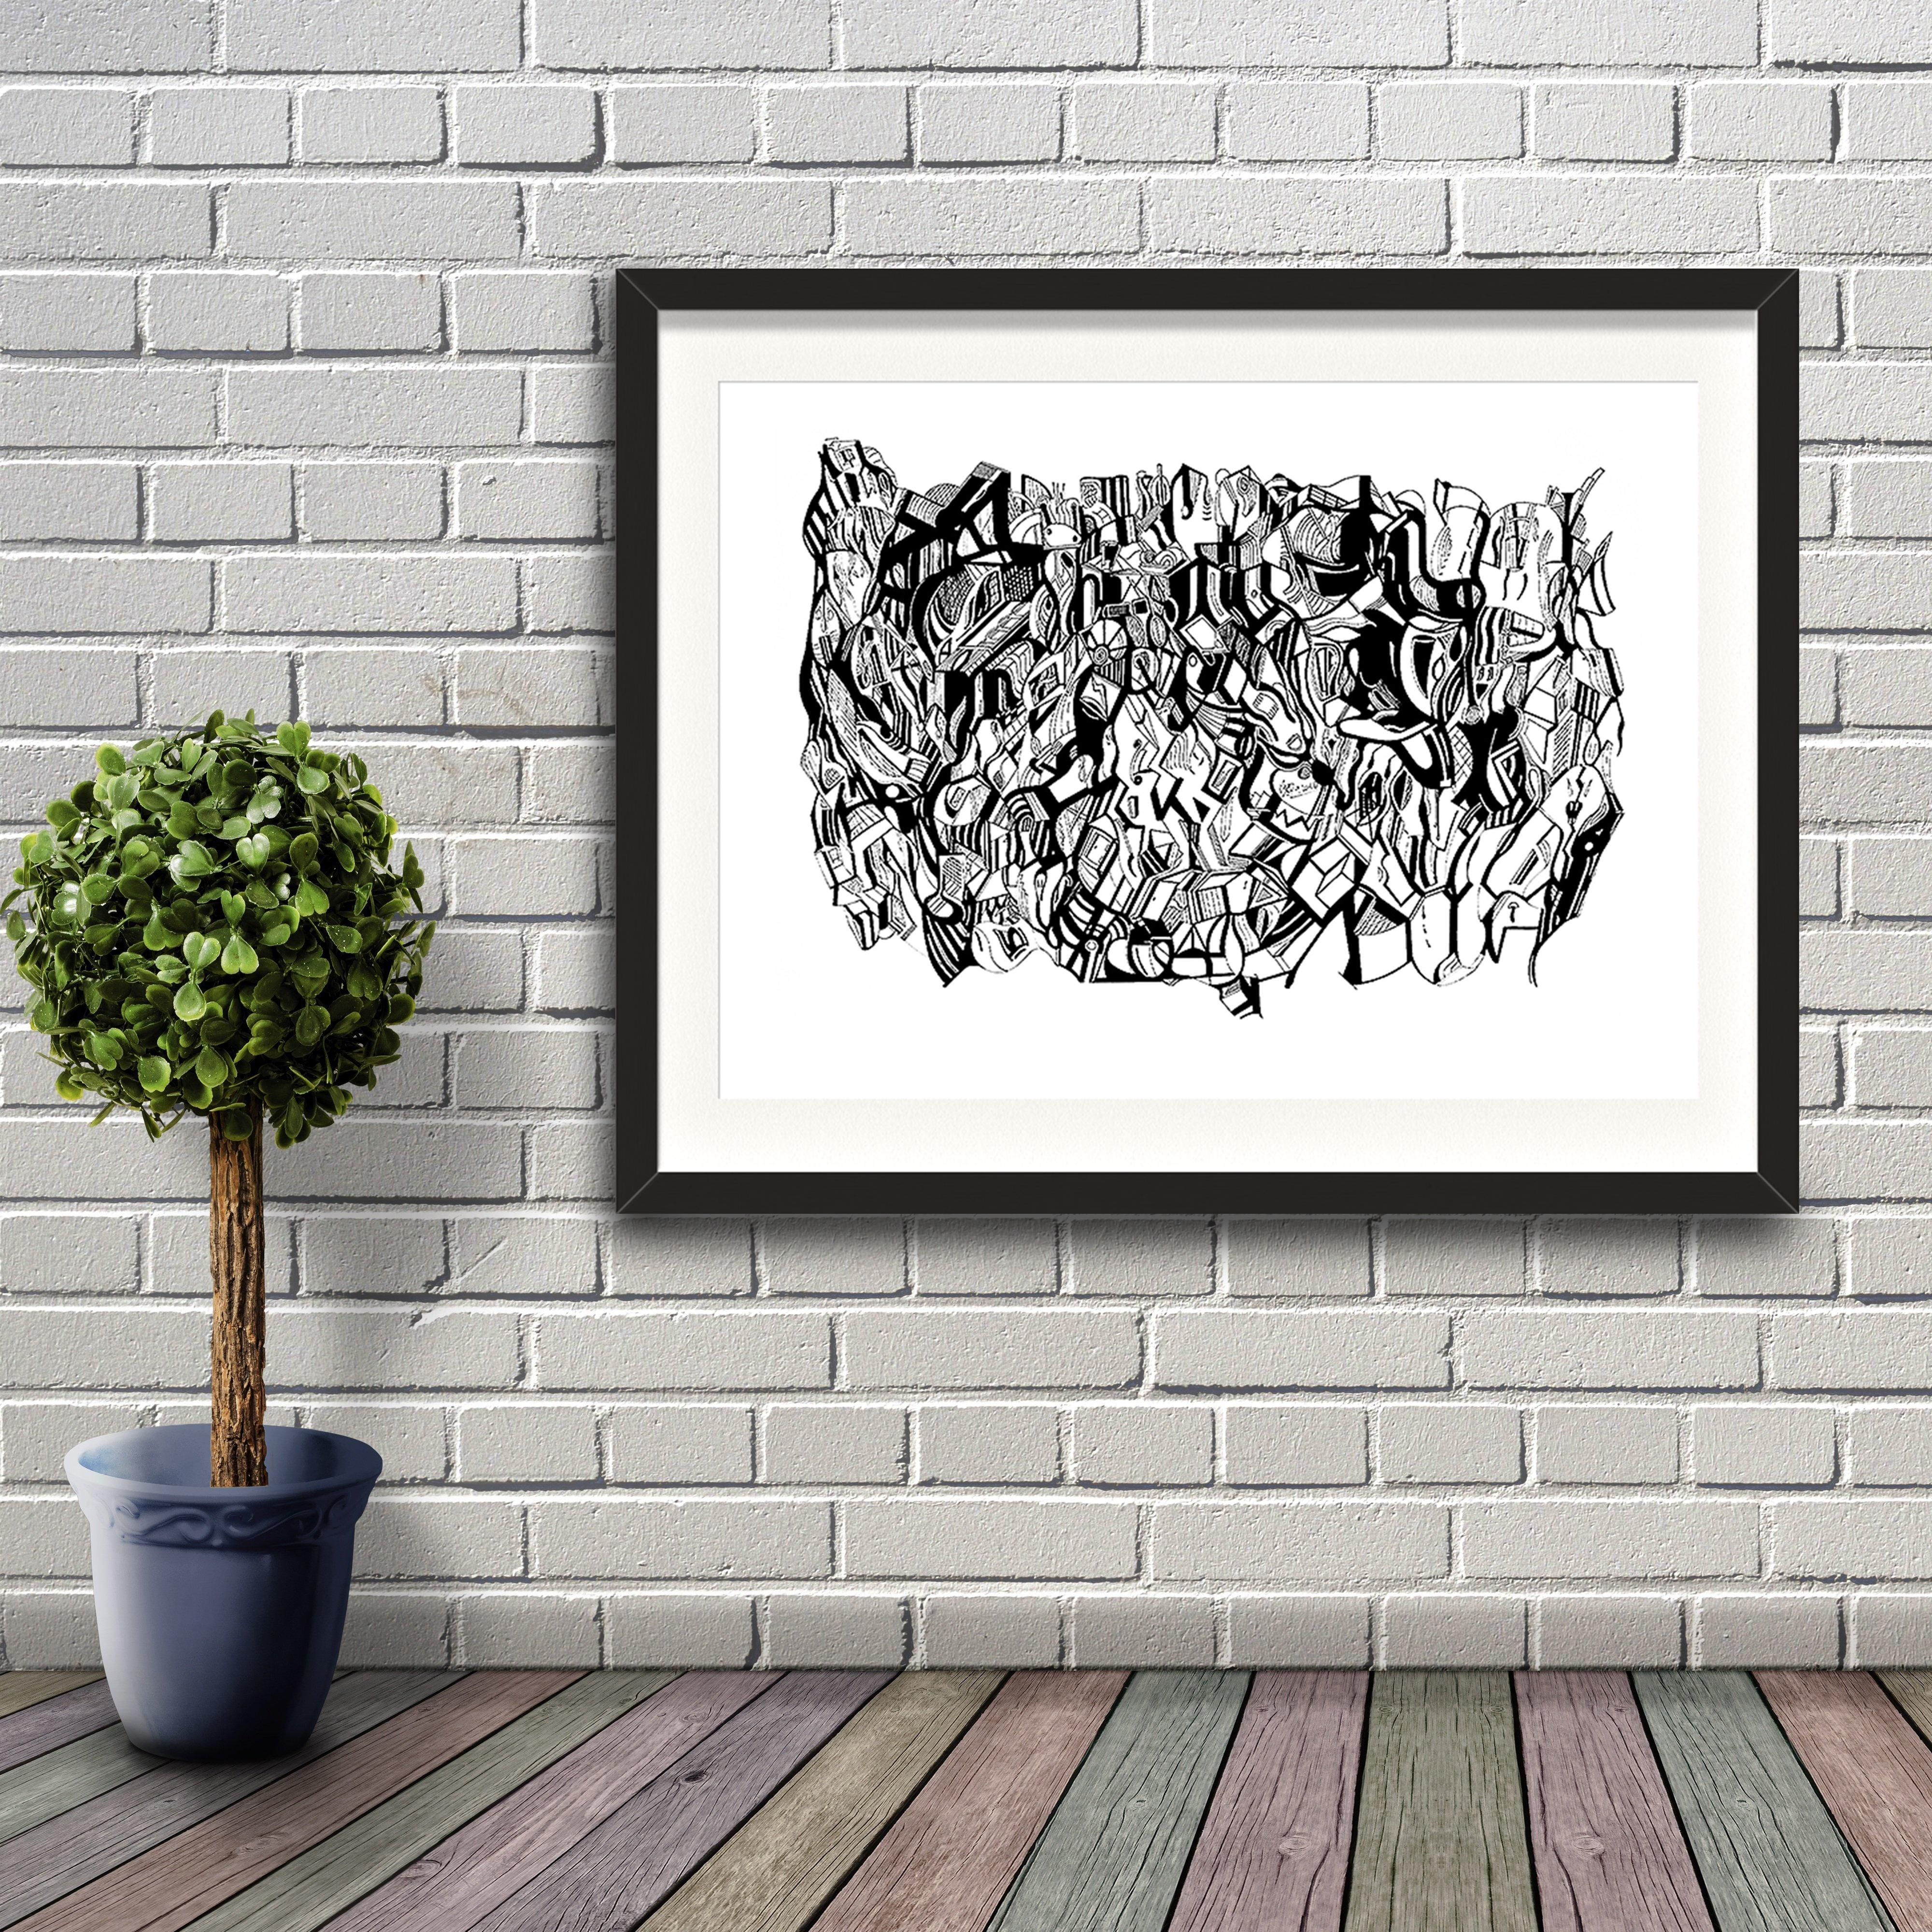 A fine art print from Jason Clarke titled Inky Depths drawn with a black Pentel pen. Dated 9/16. Artwork shown in a black frame hanging on a brick wall.